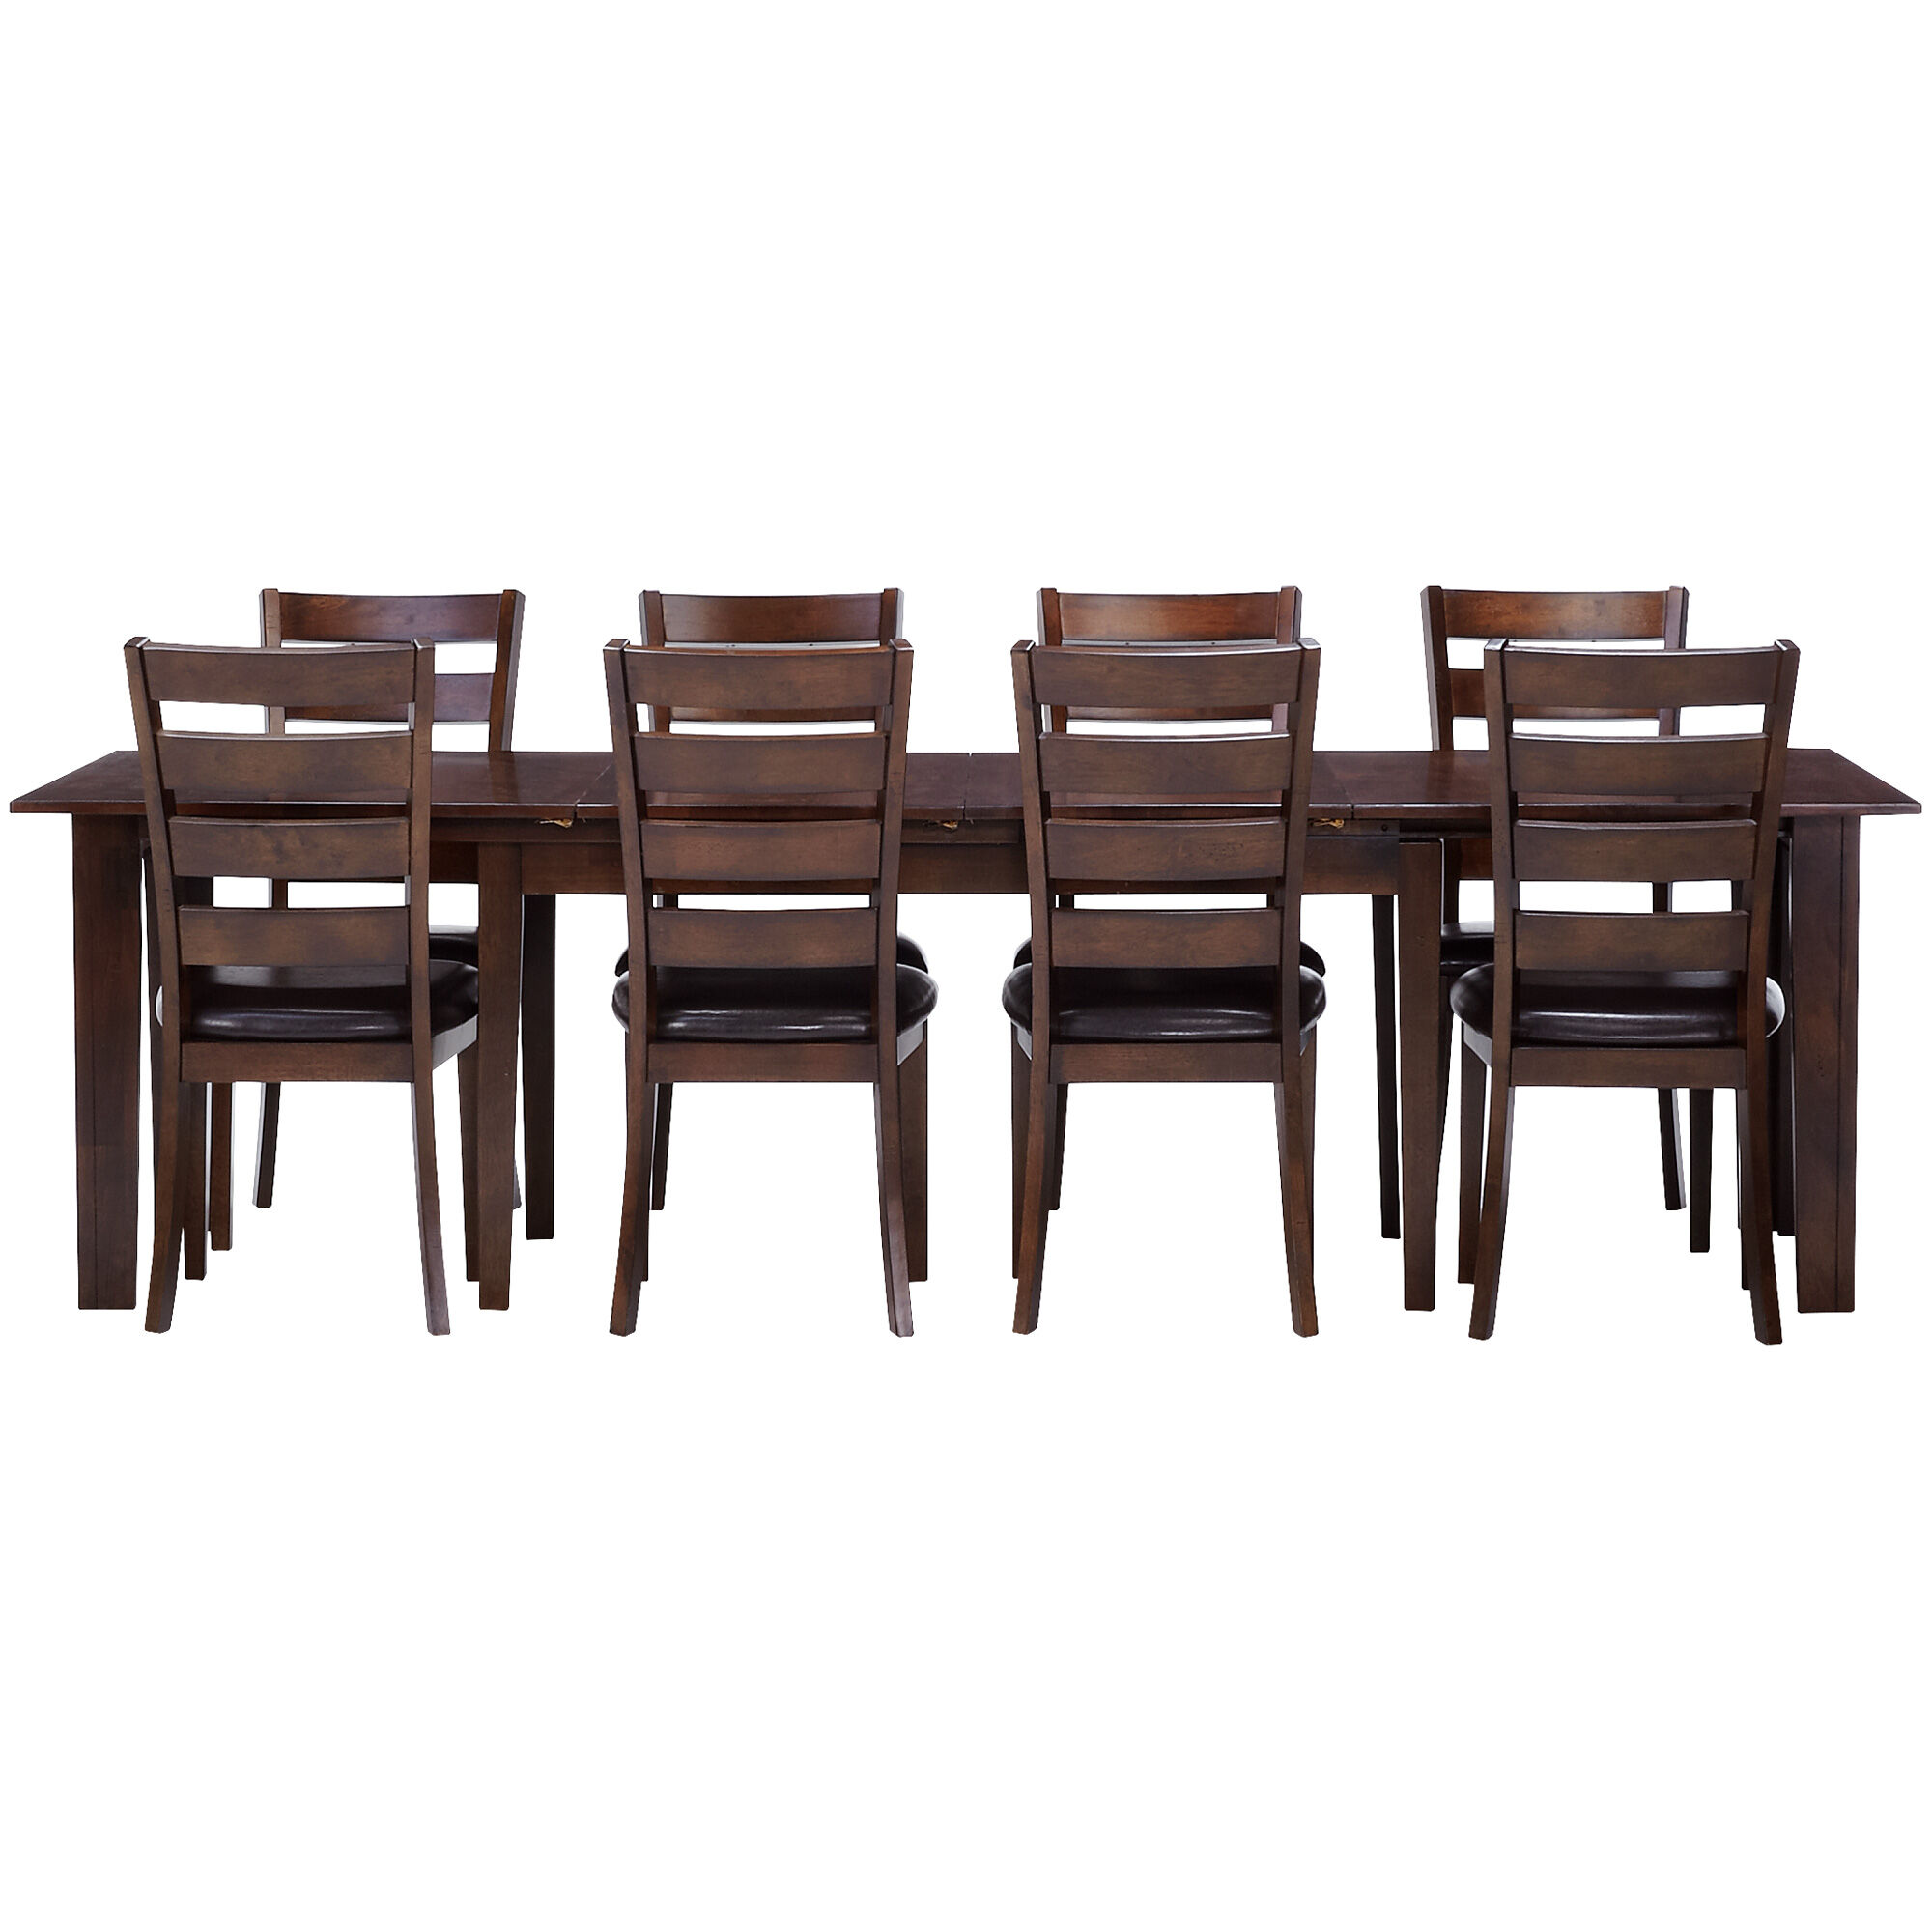 Marvelous Slumberland Furniture Kona 9 Piece Raisin Ladder Back Gmtry Best Dining Table And Chair Ideas Images Gmtryco